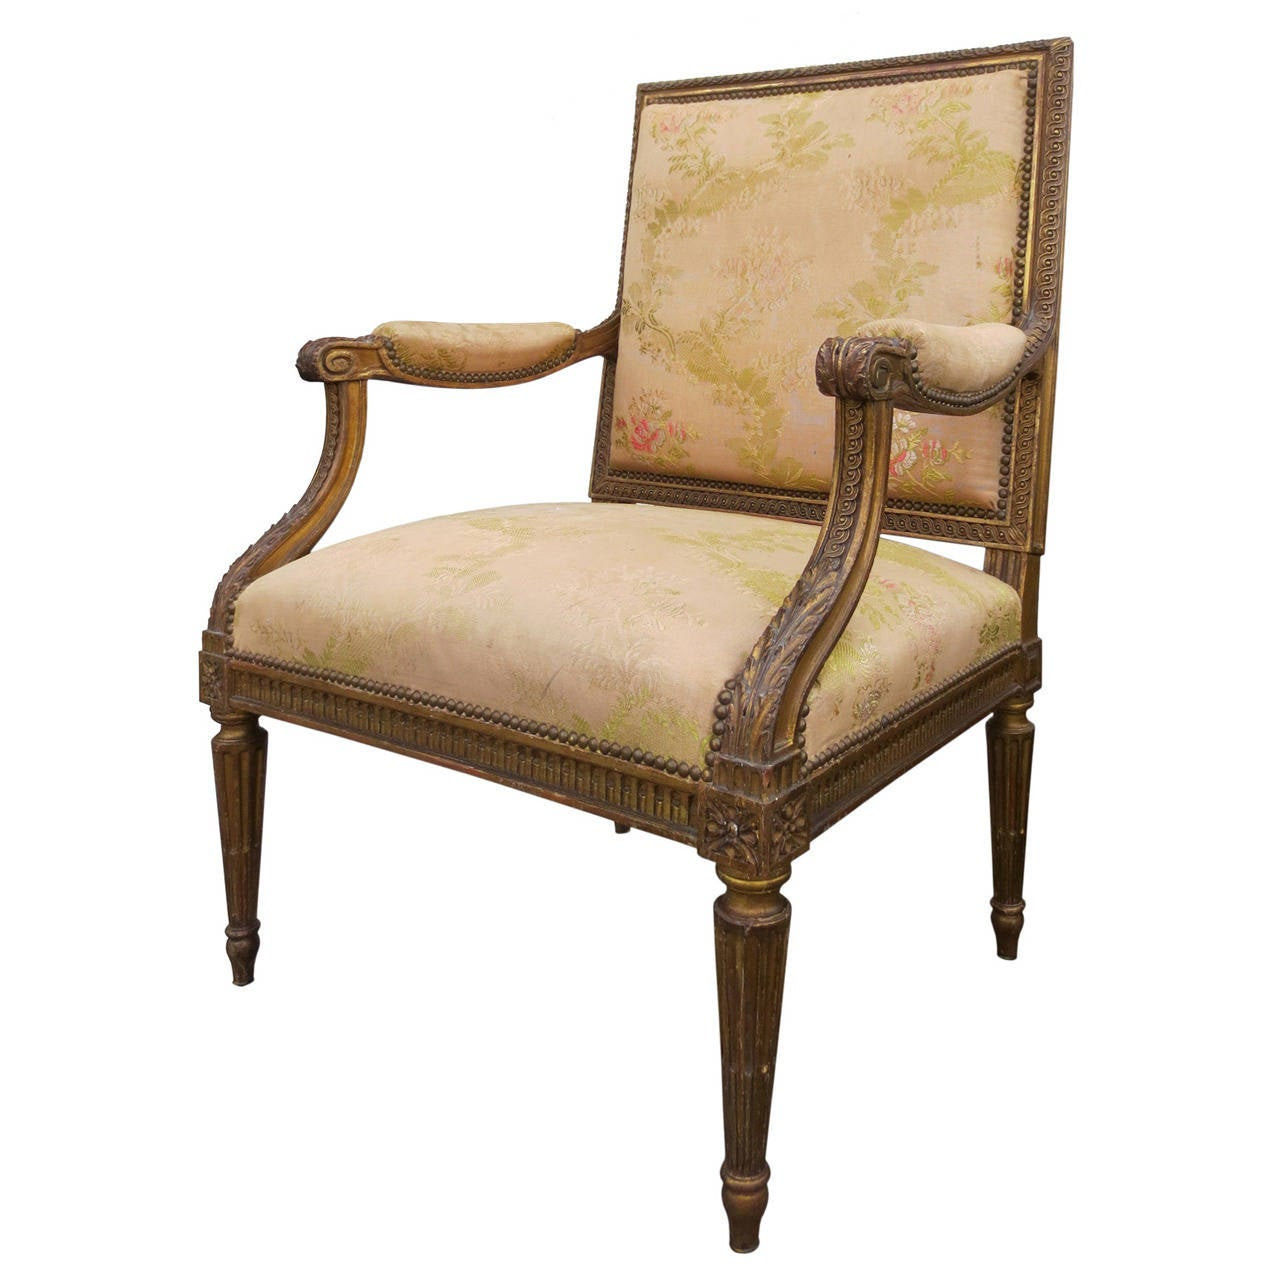 19th century french napoleon iii carved and giltwood fauteuil for sale at 1stdibs. Black Bedroom Furniture Sets. Home Design Ideas